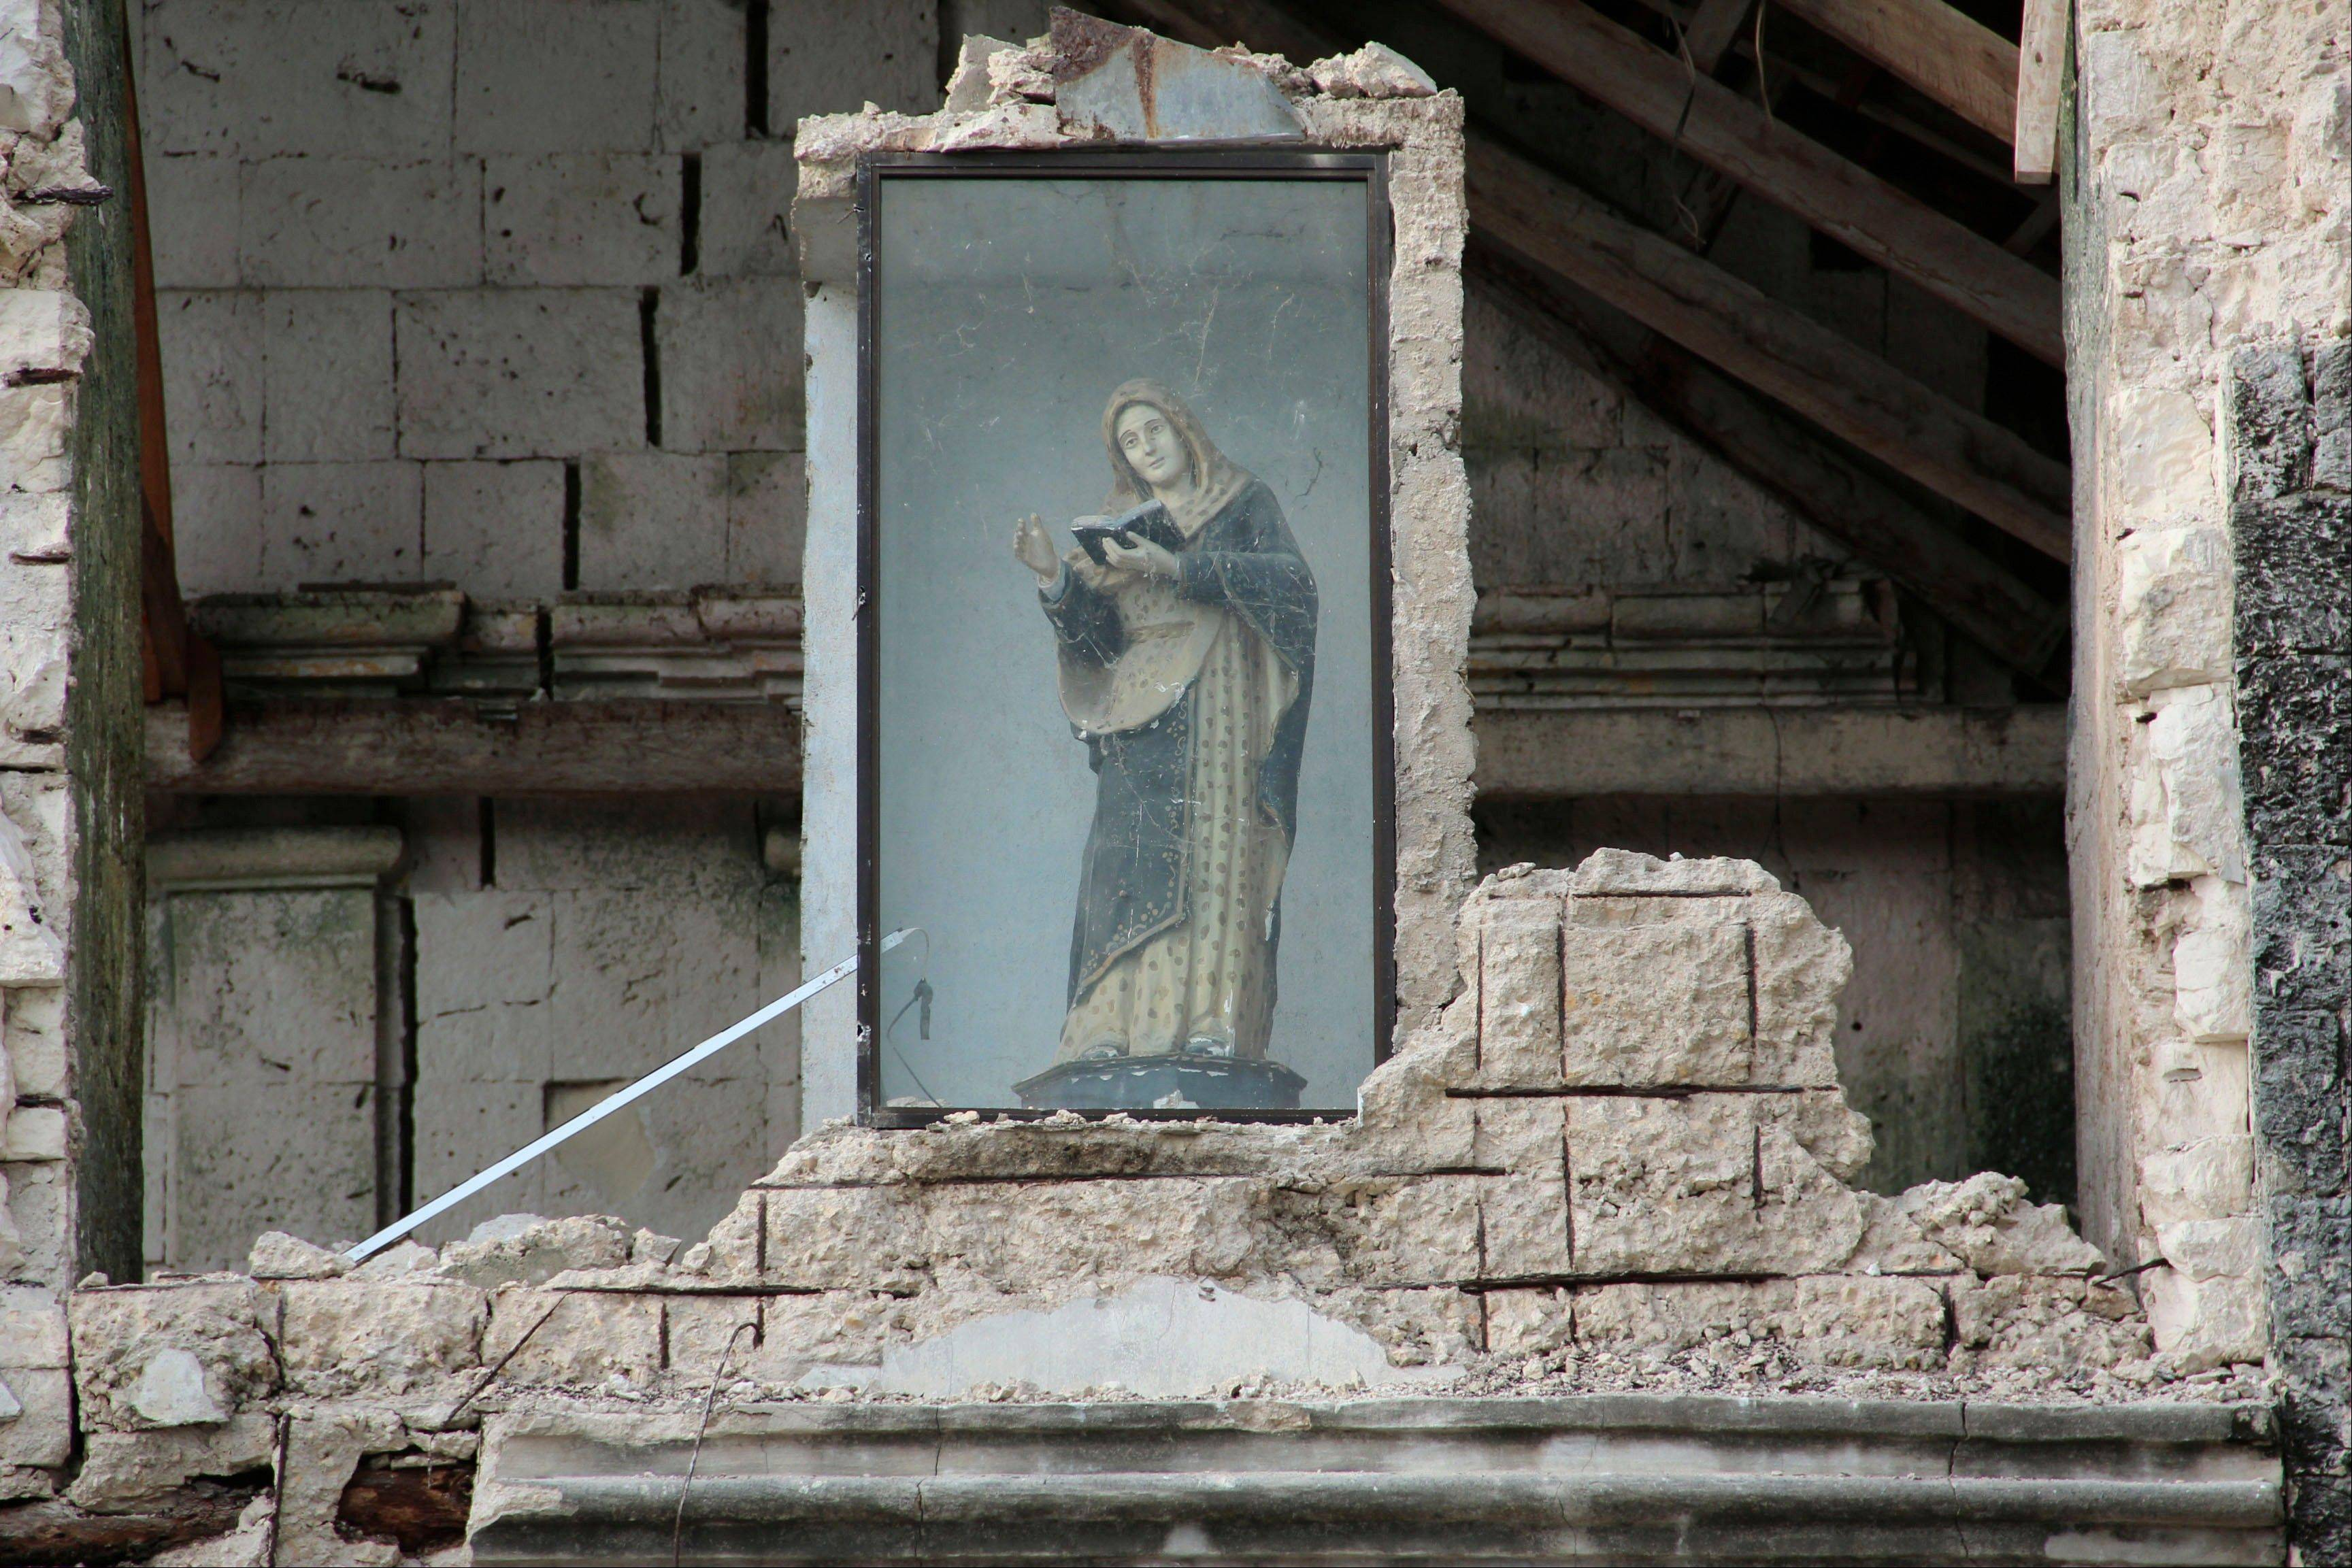 A religious icon remains encased amid the rubble in Bohol province in central Philippines Wednesday, Oct. 16, 2013, a day after a 7.2-magnitude quake hit Bohol and Cebu provinces. The quake that struck the central Philippines and killed more than a hundred people also dealt a serious blow to the region's historical and religious legacy by heavily damaging a dozen or more churches, some of them hundreds of years old.